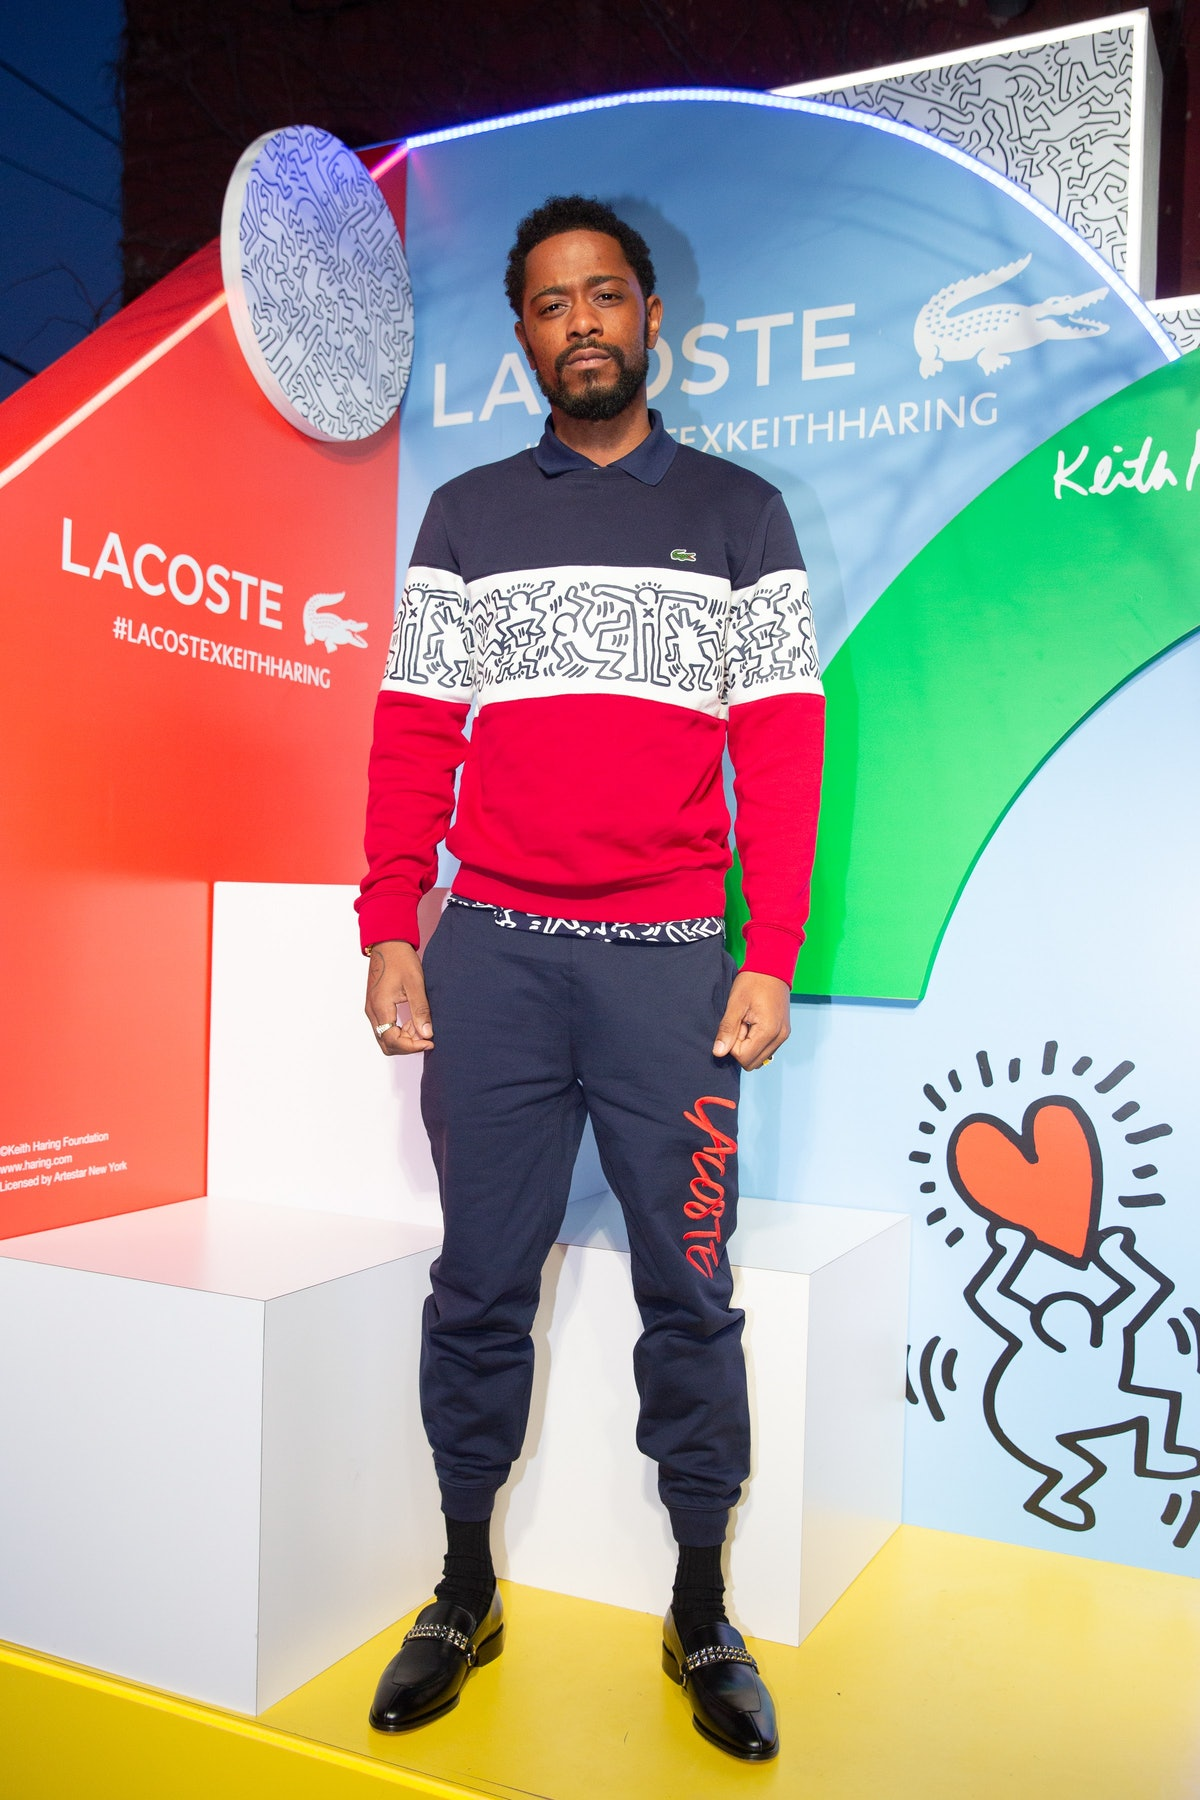 [PRIVATE FOR APPROVALS] Lacoste Celebrates: Keith Haring Global Launch